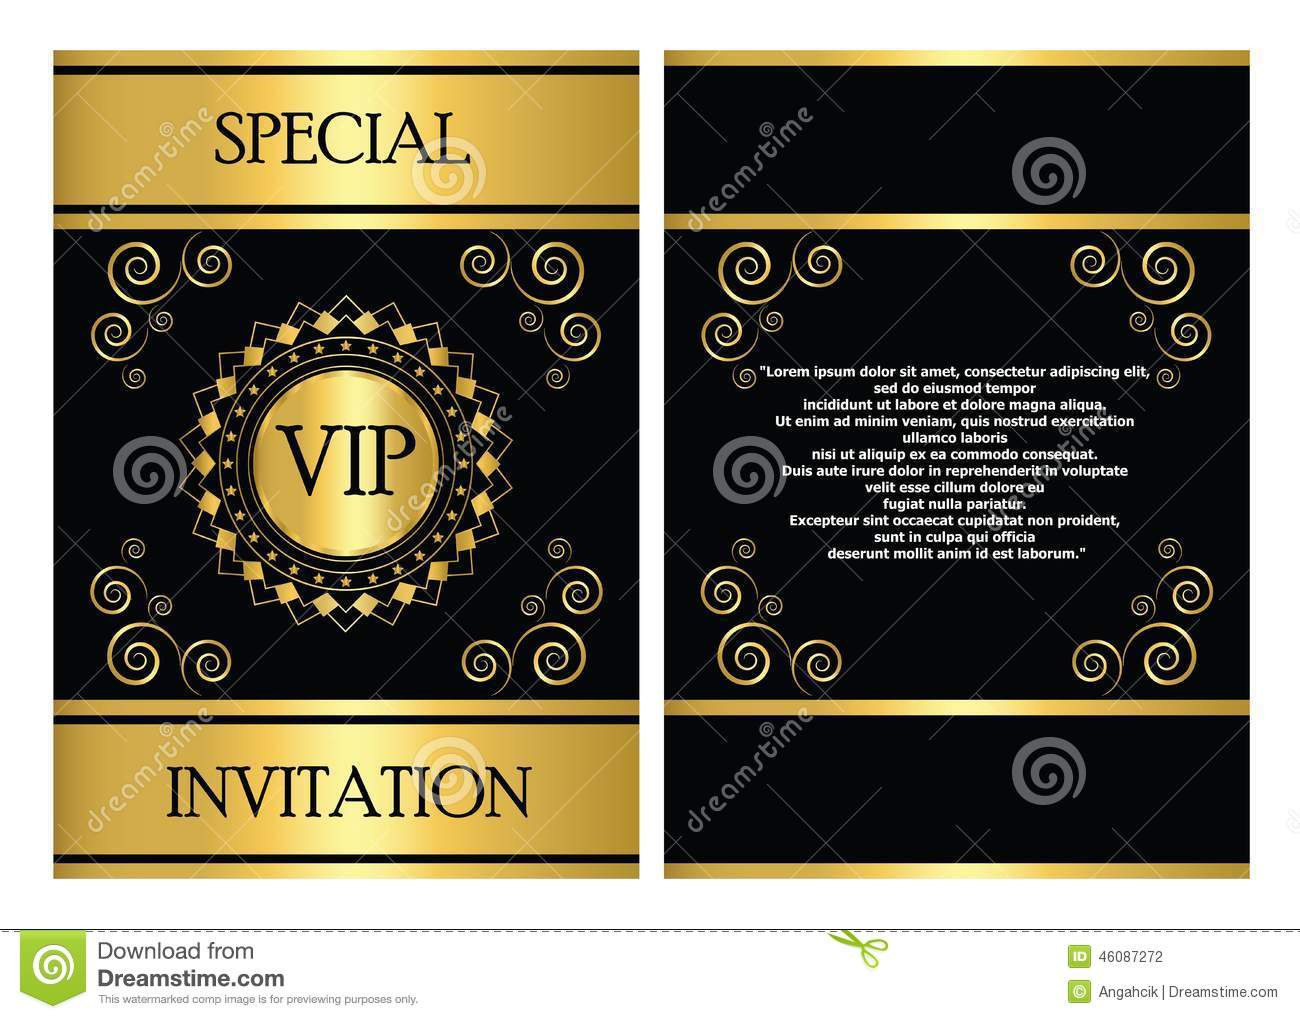 VIP Invitation Card Template  Corporate Party Invitation Template